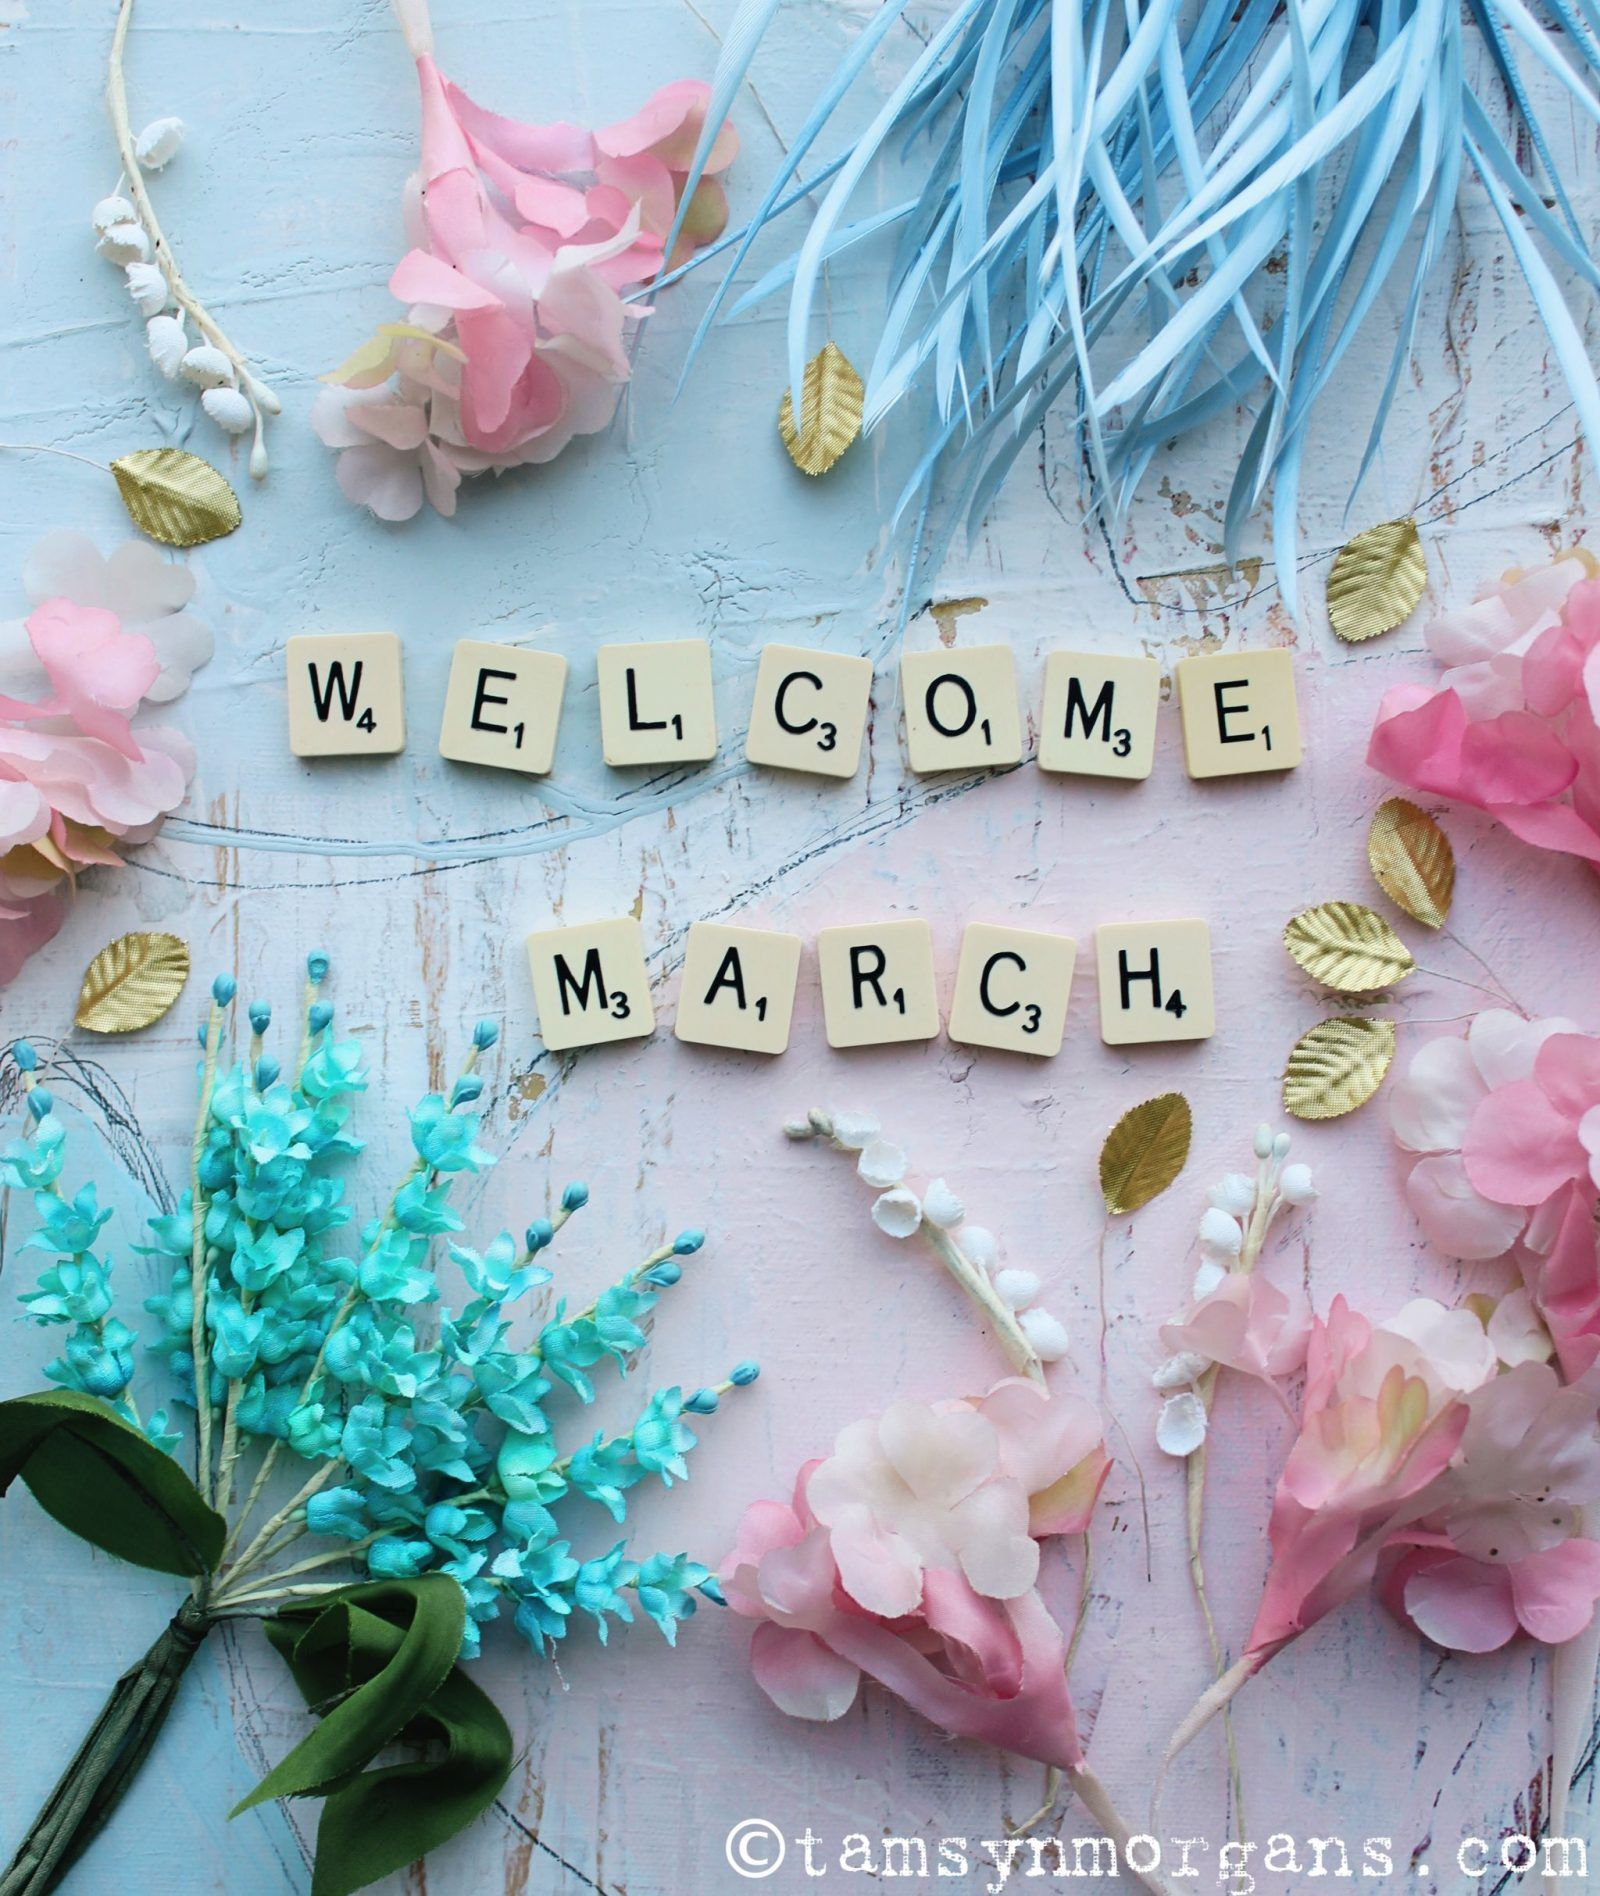 march welcome hello month quotes morgans tamsynmorgans arrived tamsyn lovely well months backgrounds smile mean pleasant mount company wednesday calendar